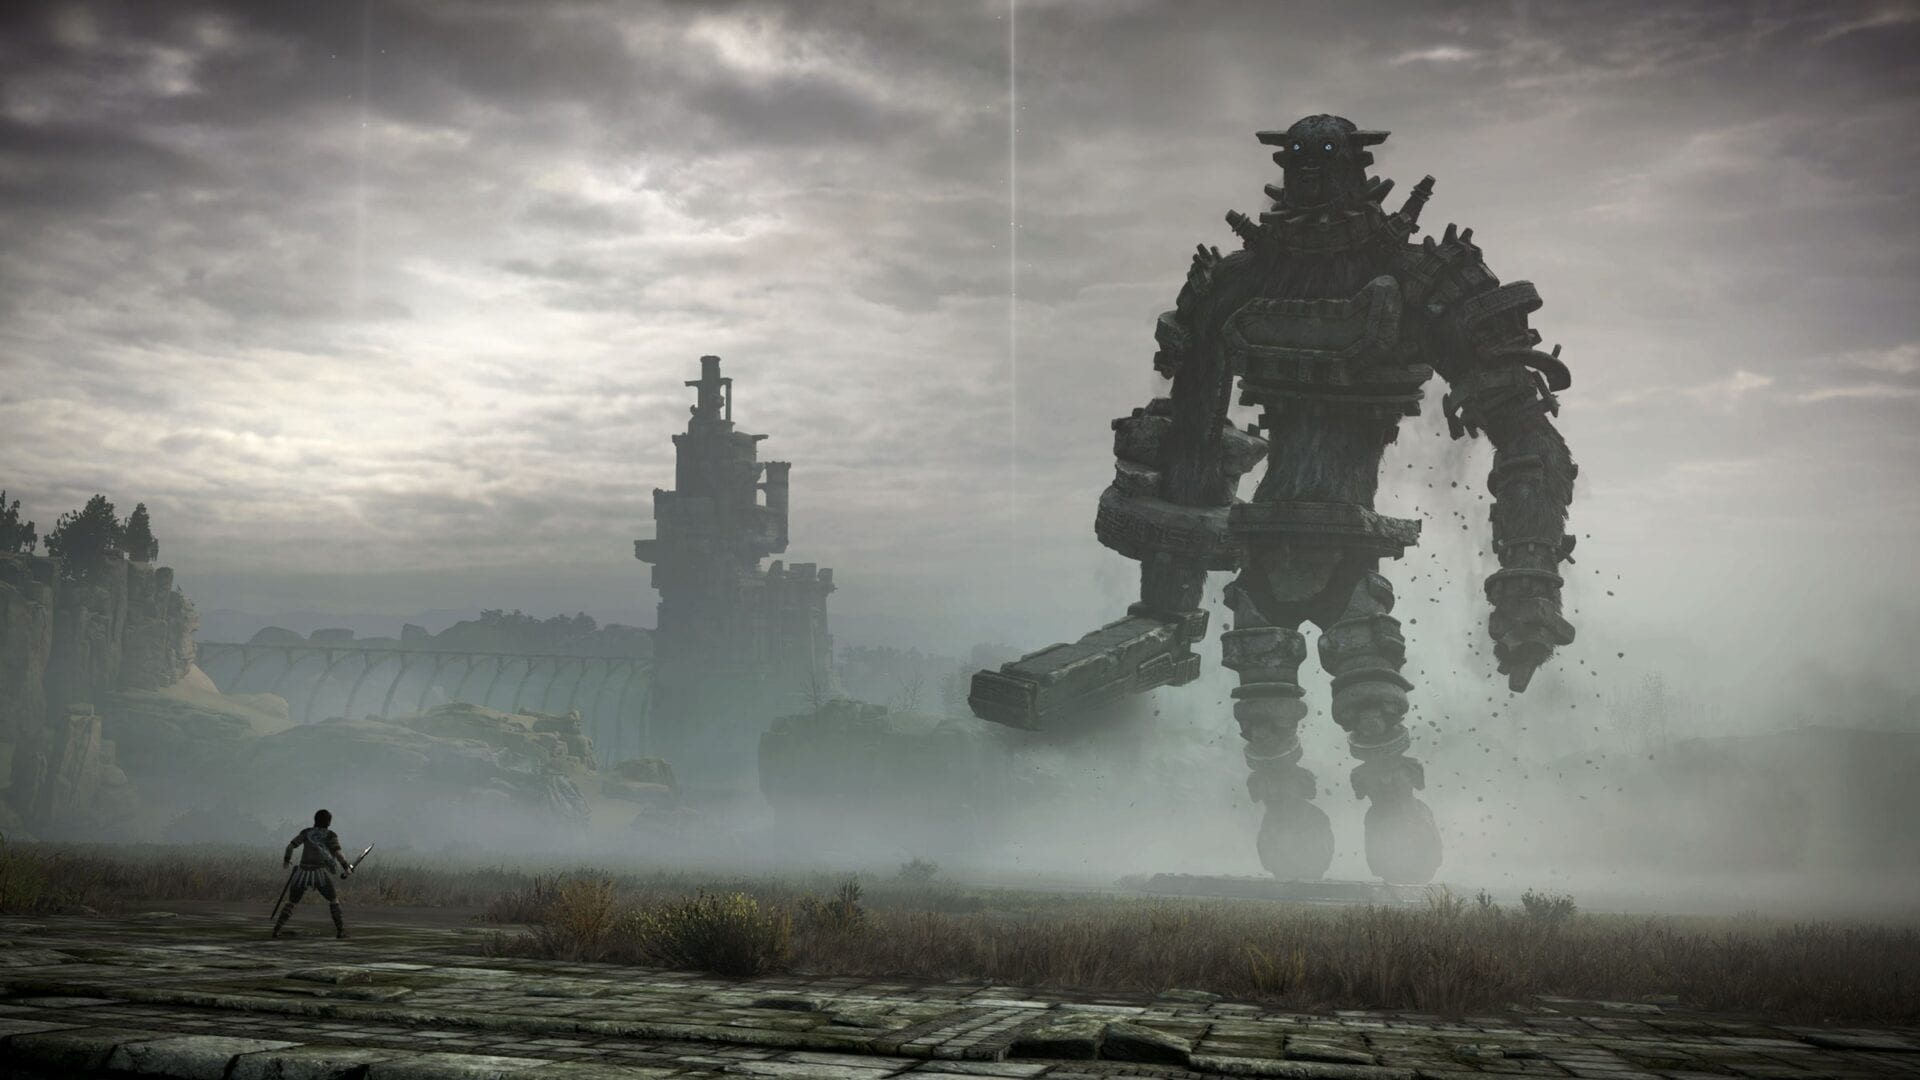 ps4 games, shadow of the colossus, xbox series x emulation